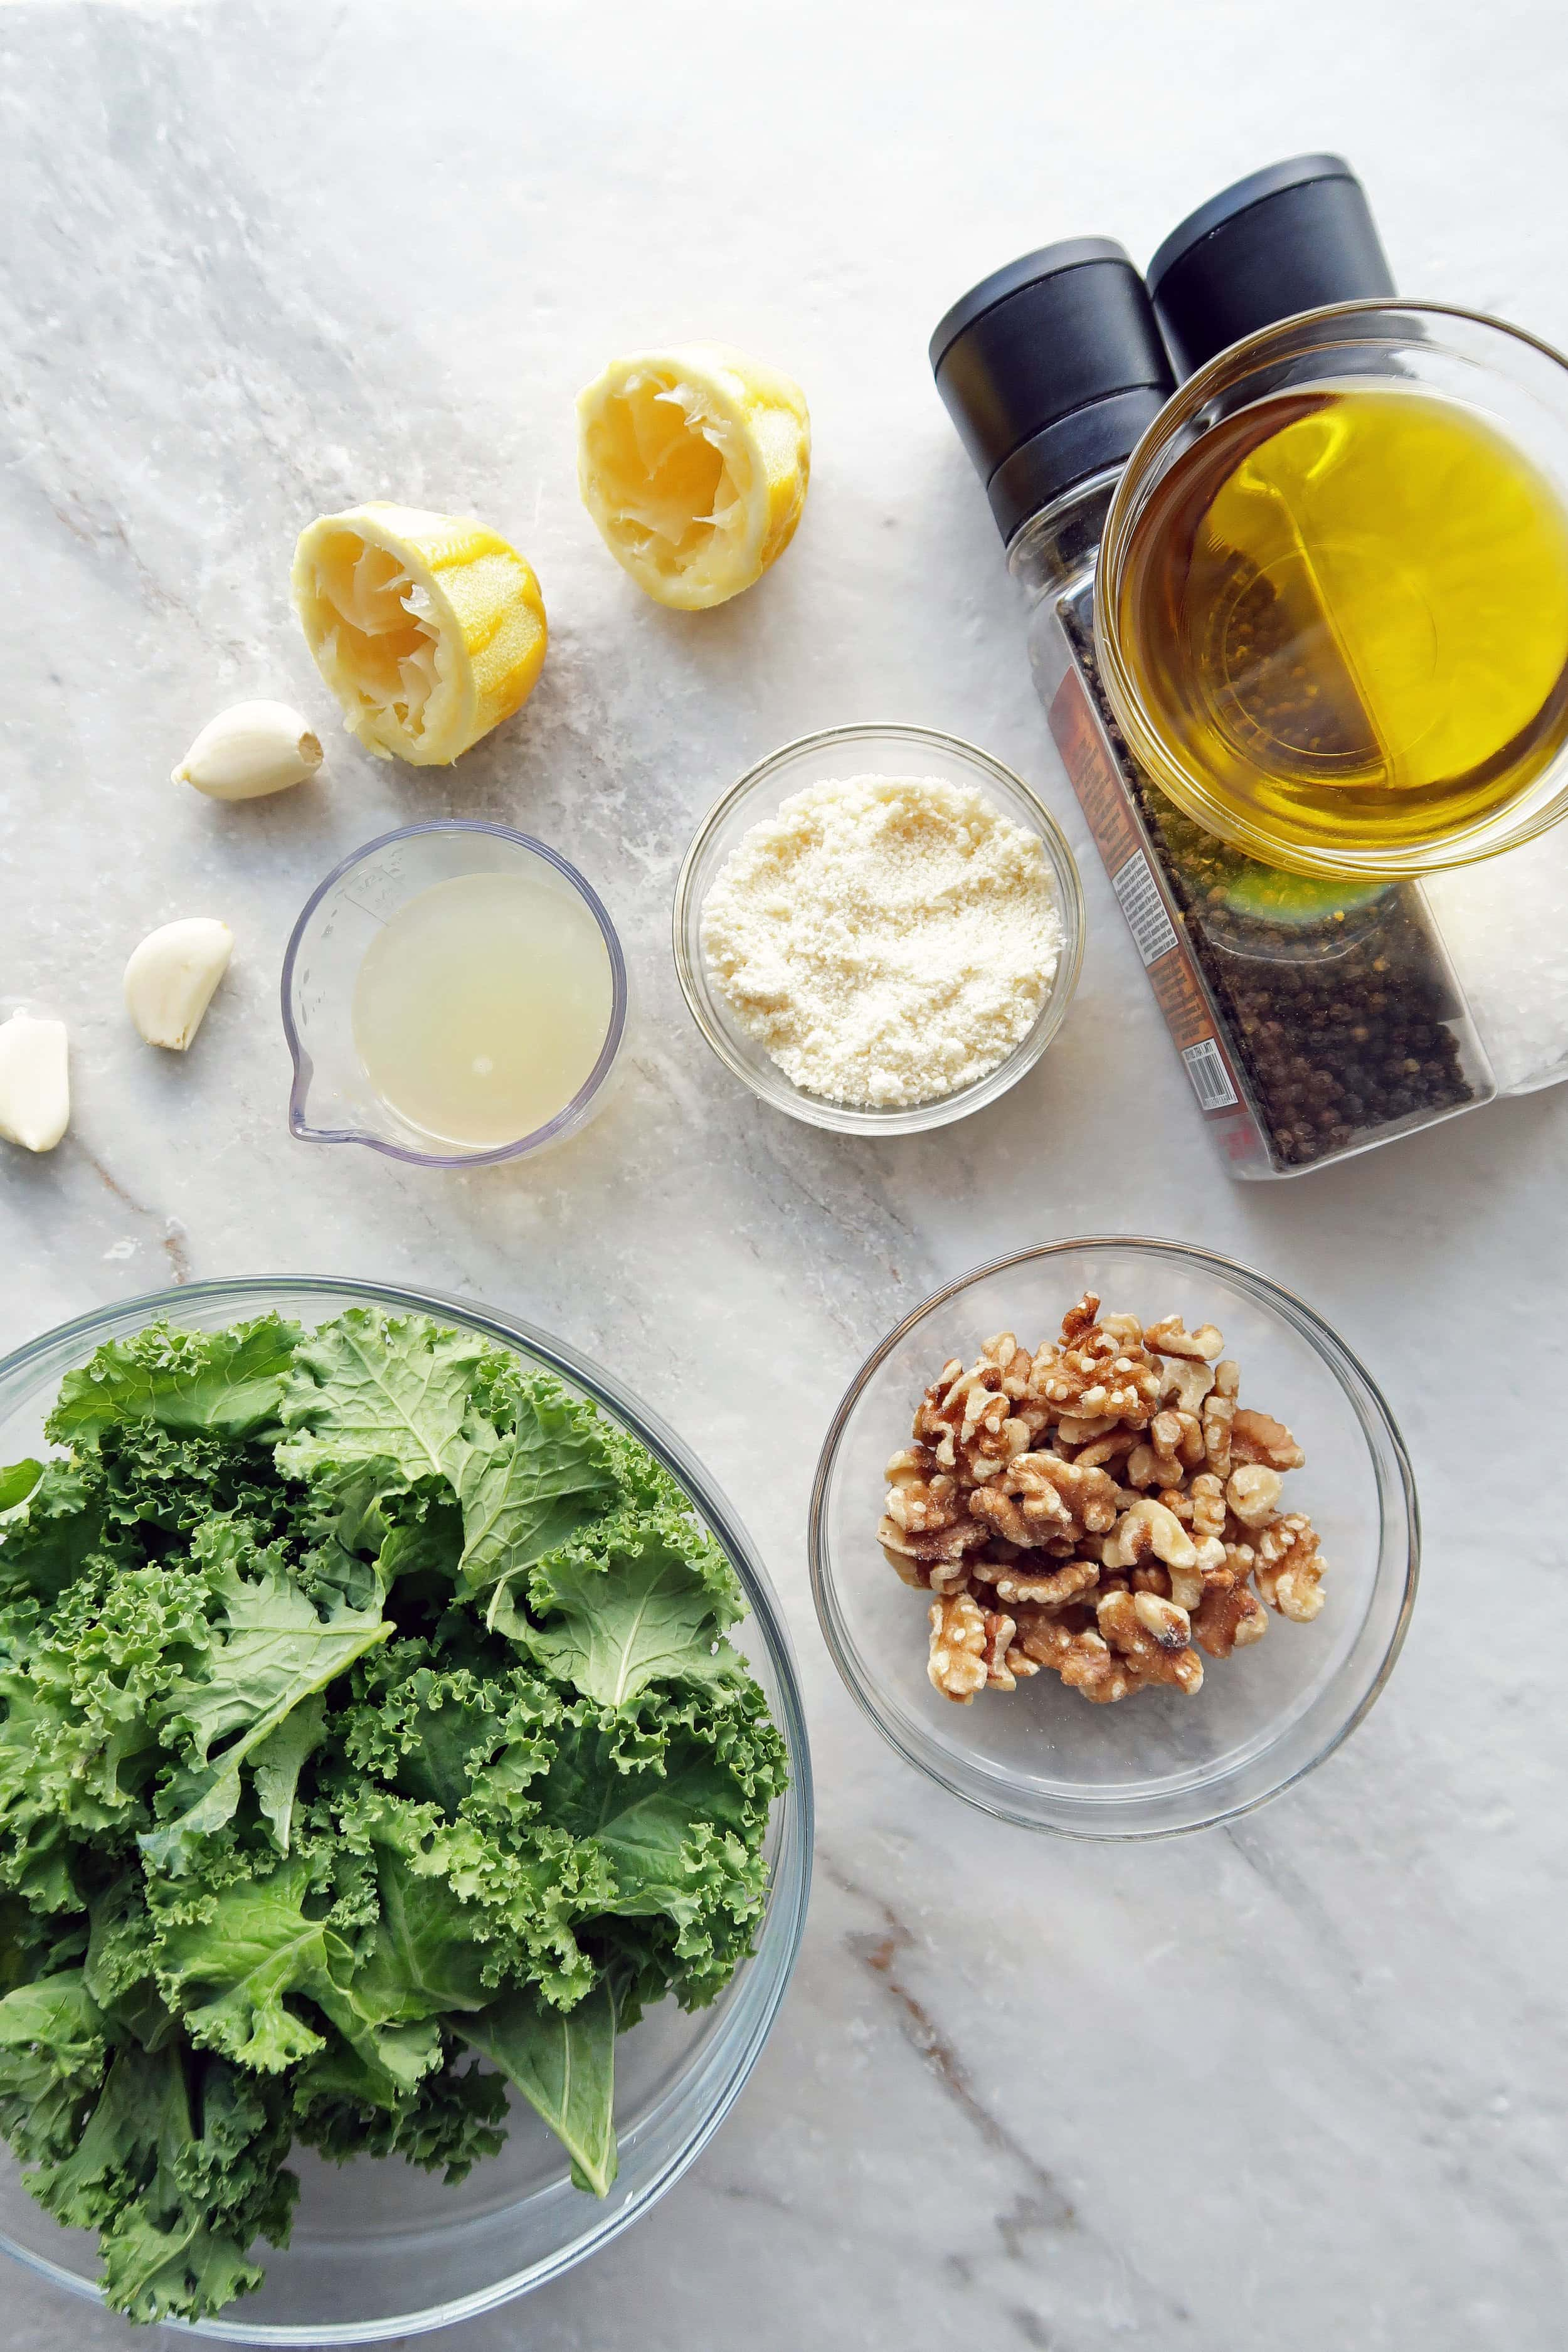 Bowls of kale, walnuts, olive oil, lemon juice, and parmesan cheese along with loose garlic and salt and pepper shakers.